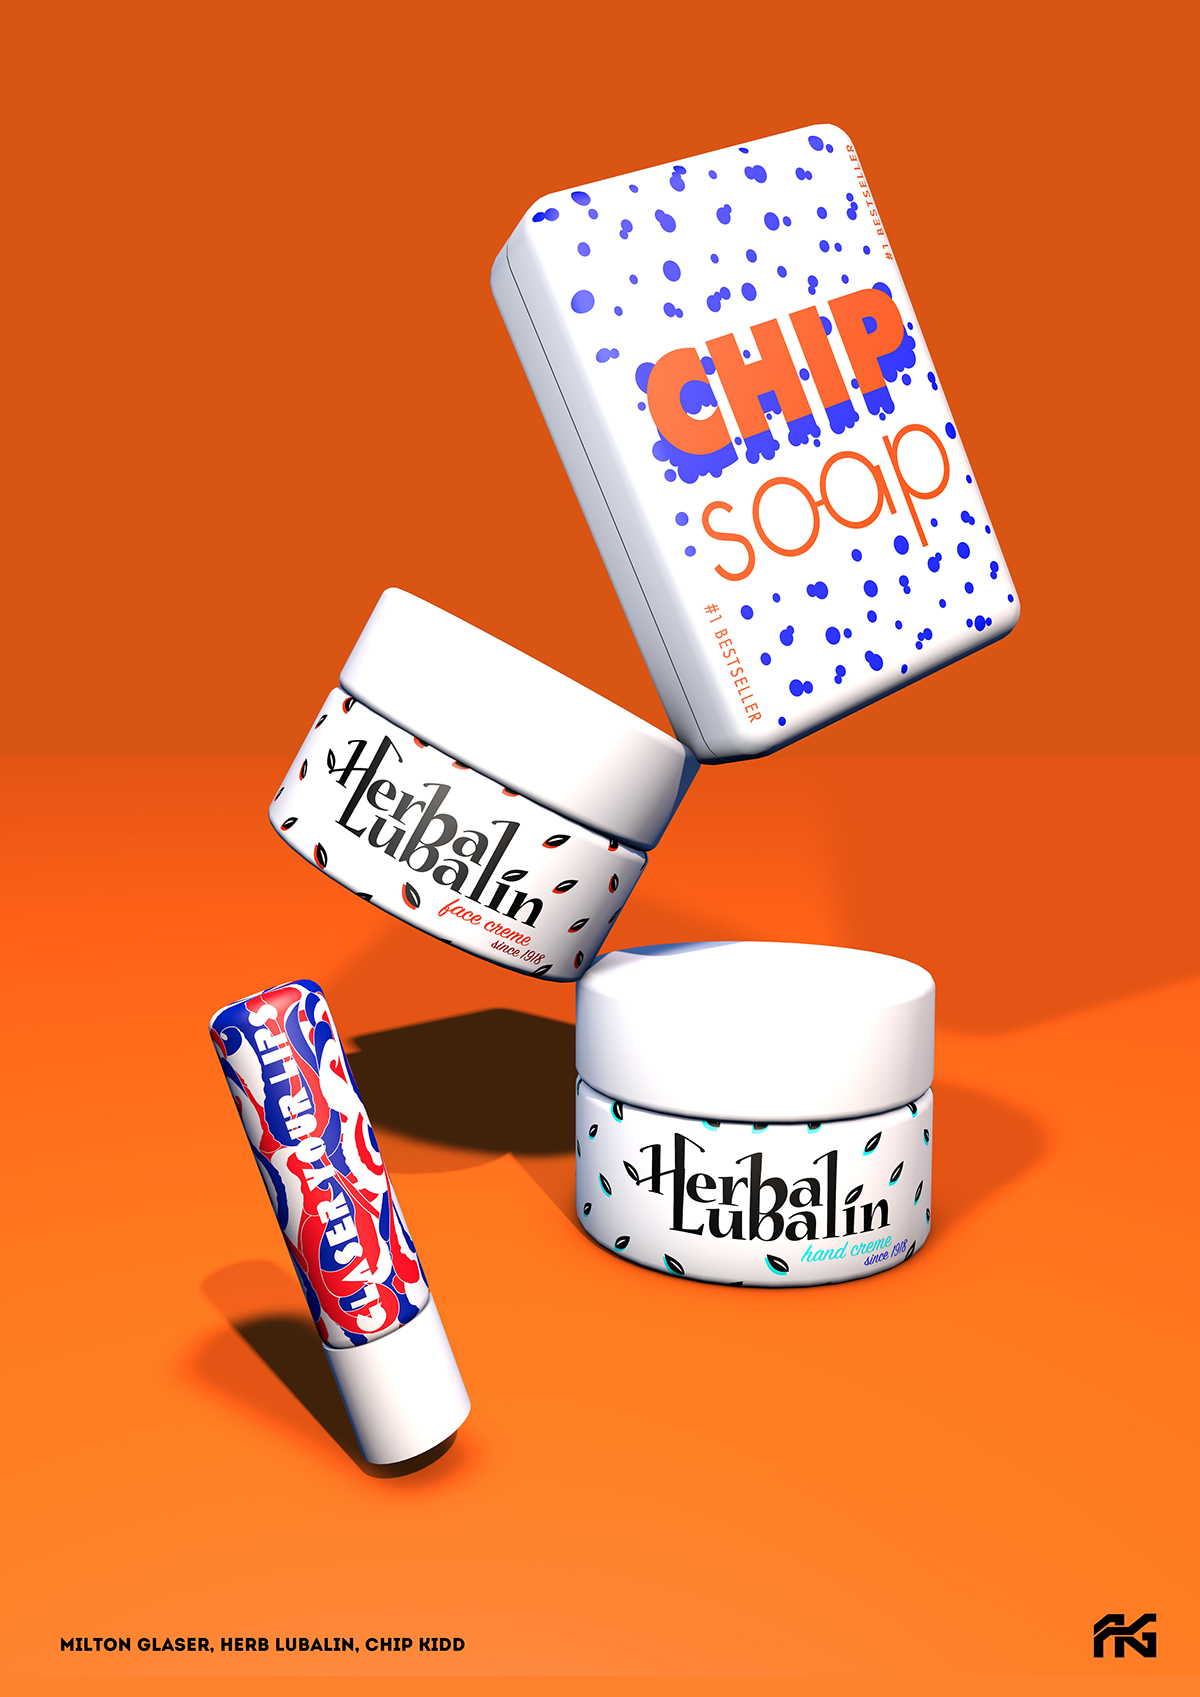 design graphics Packaging typography   products 3D moddeing graphicdesign branding